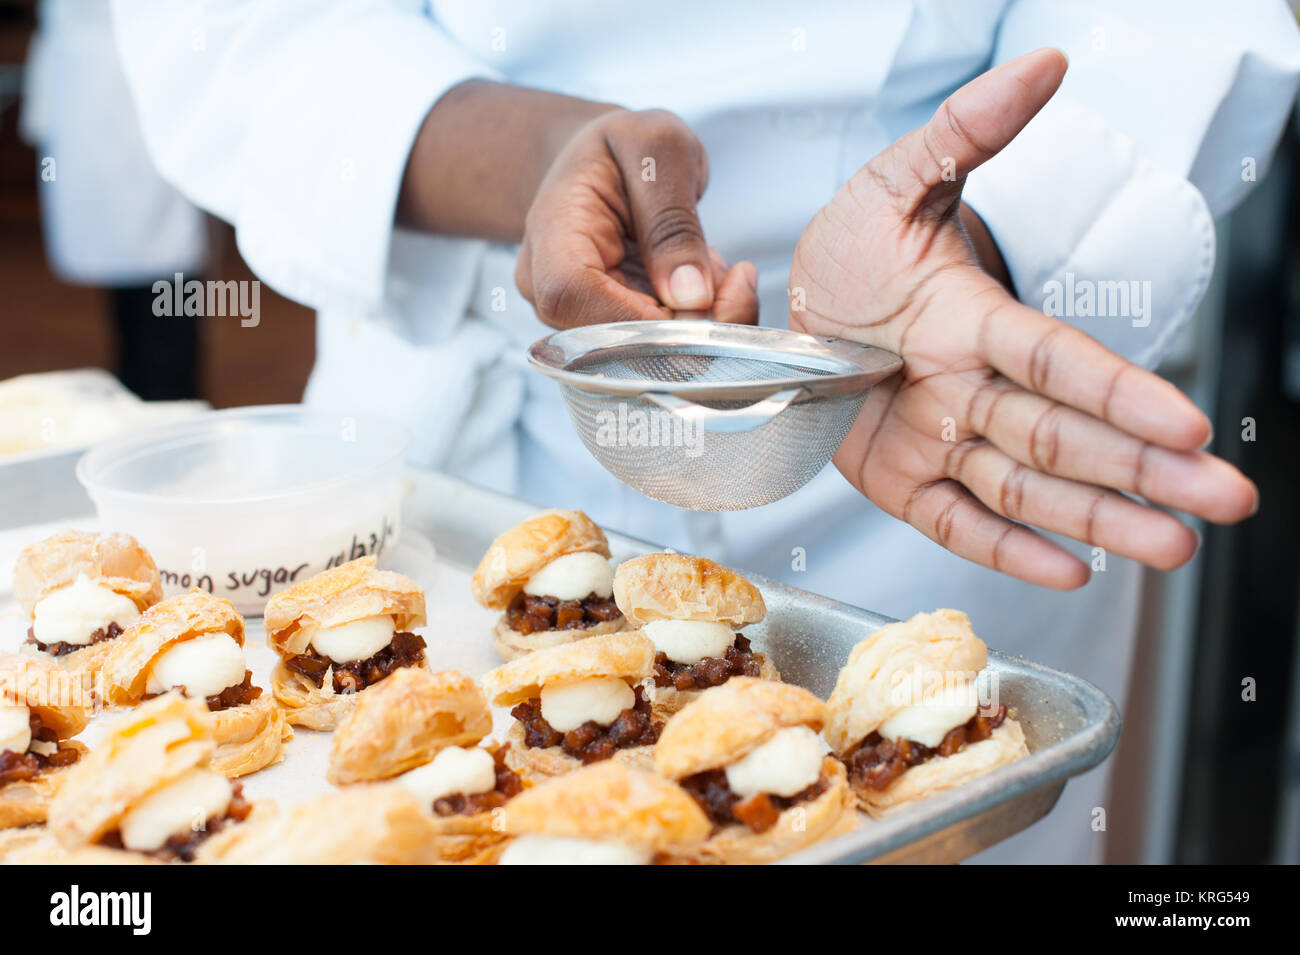 Cream puffs and dried fruit with a sugar sifter - Stock Image